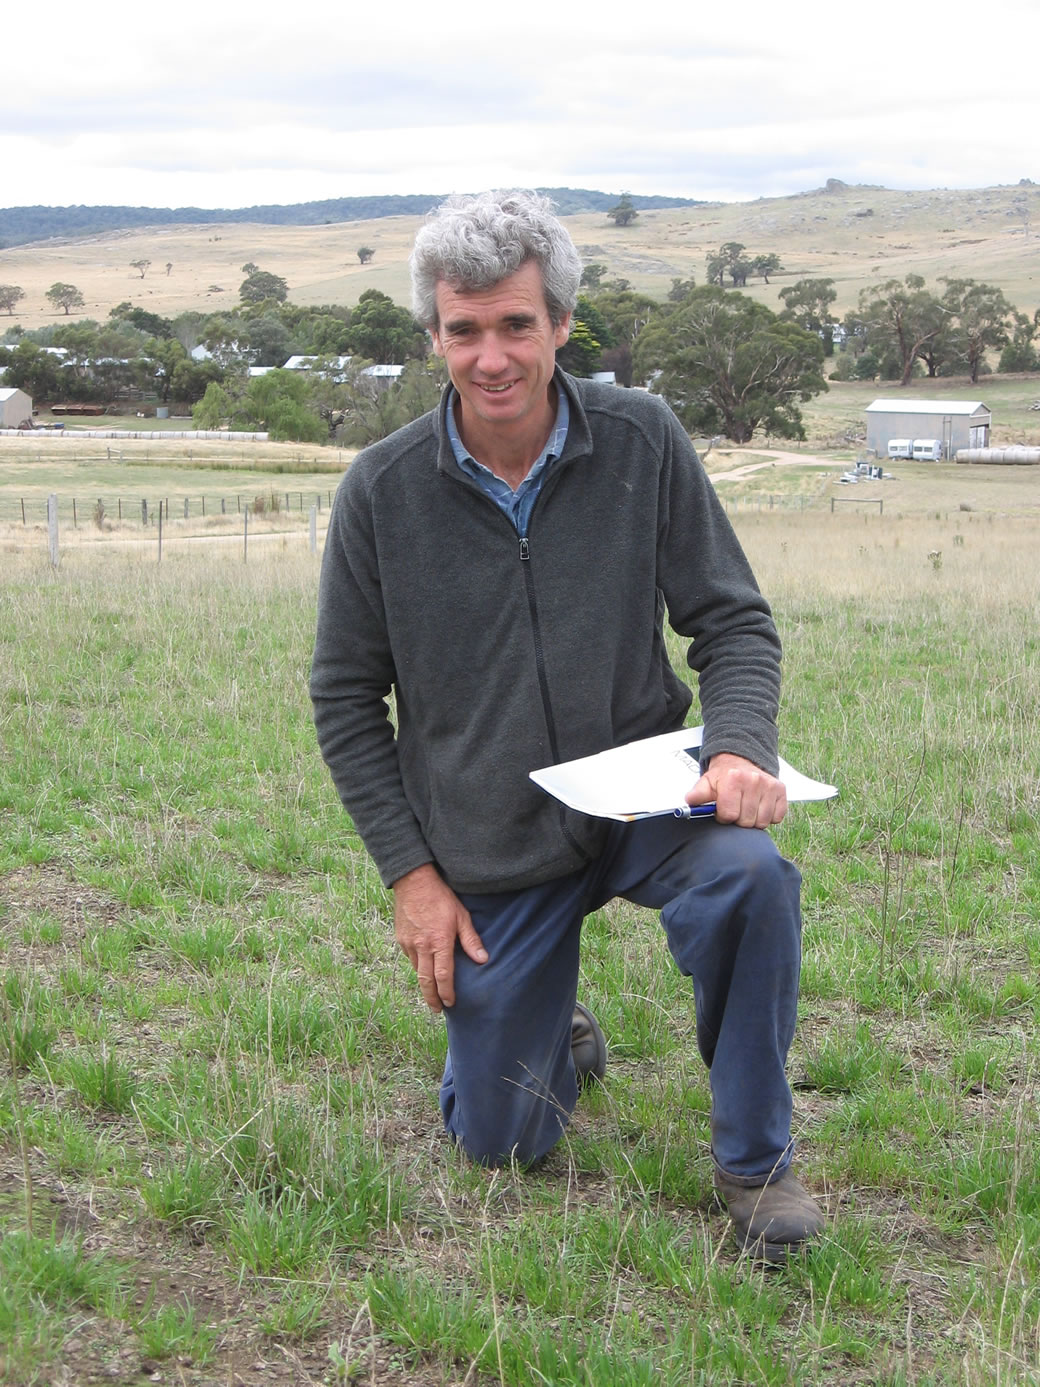 Michael O'Sullivan at the EverGraze Supporting Site assessing the Banquet II perennial ryegrass pasture.